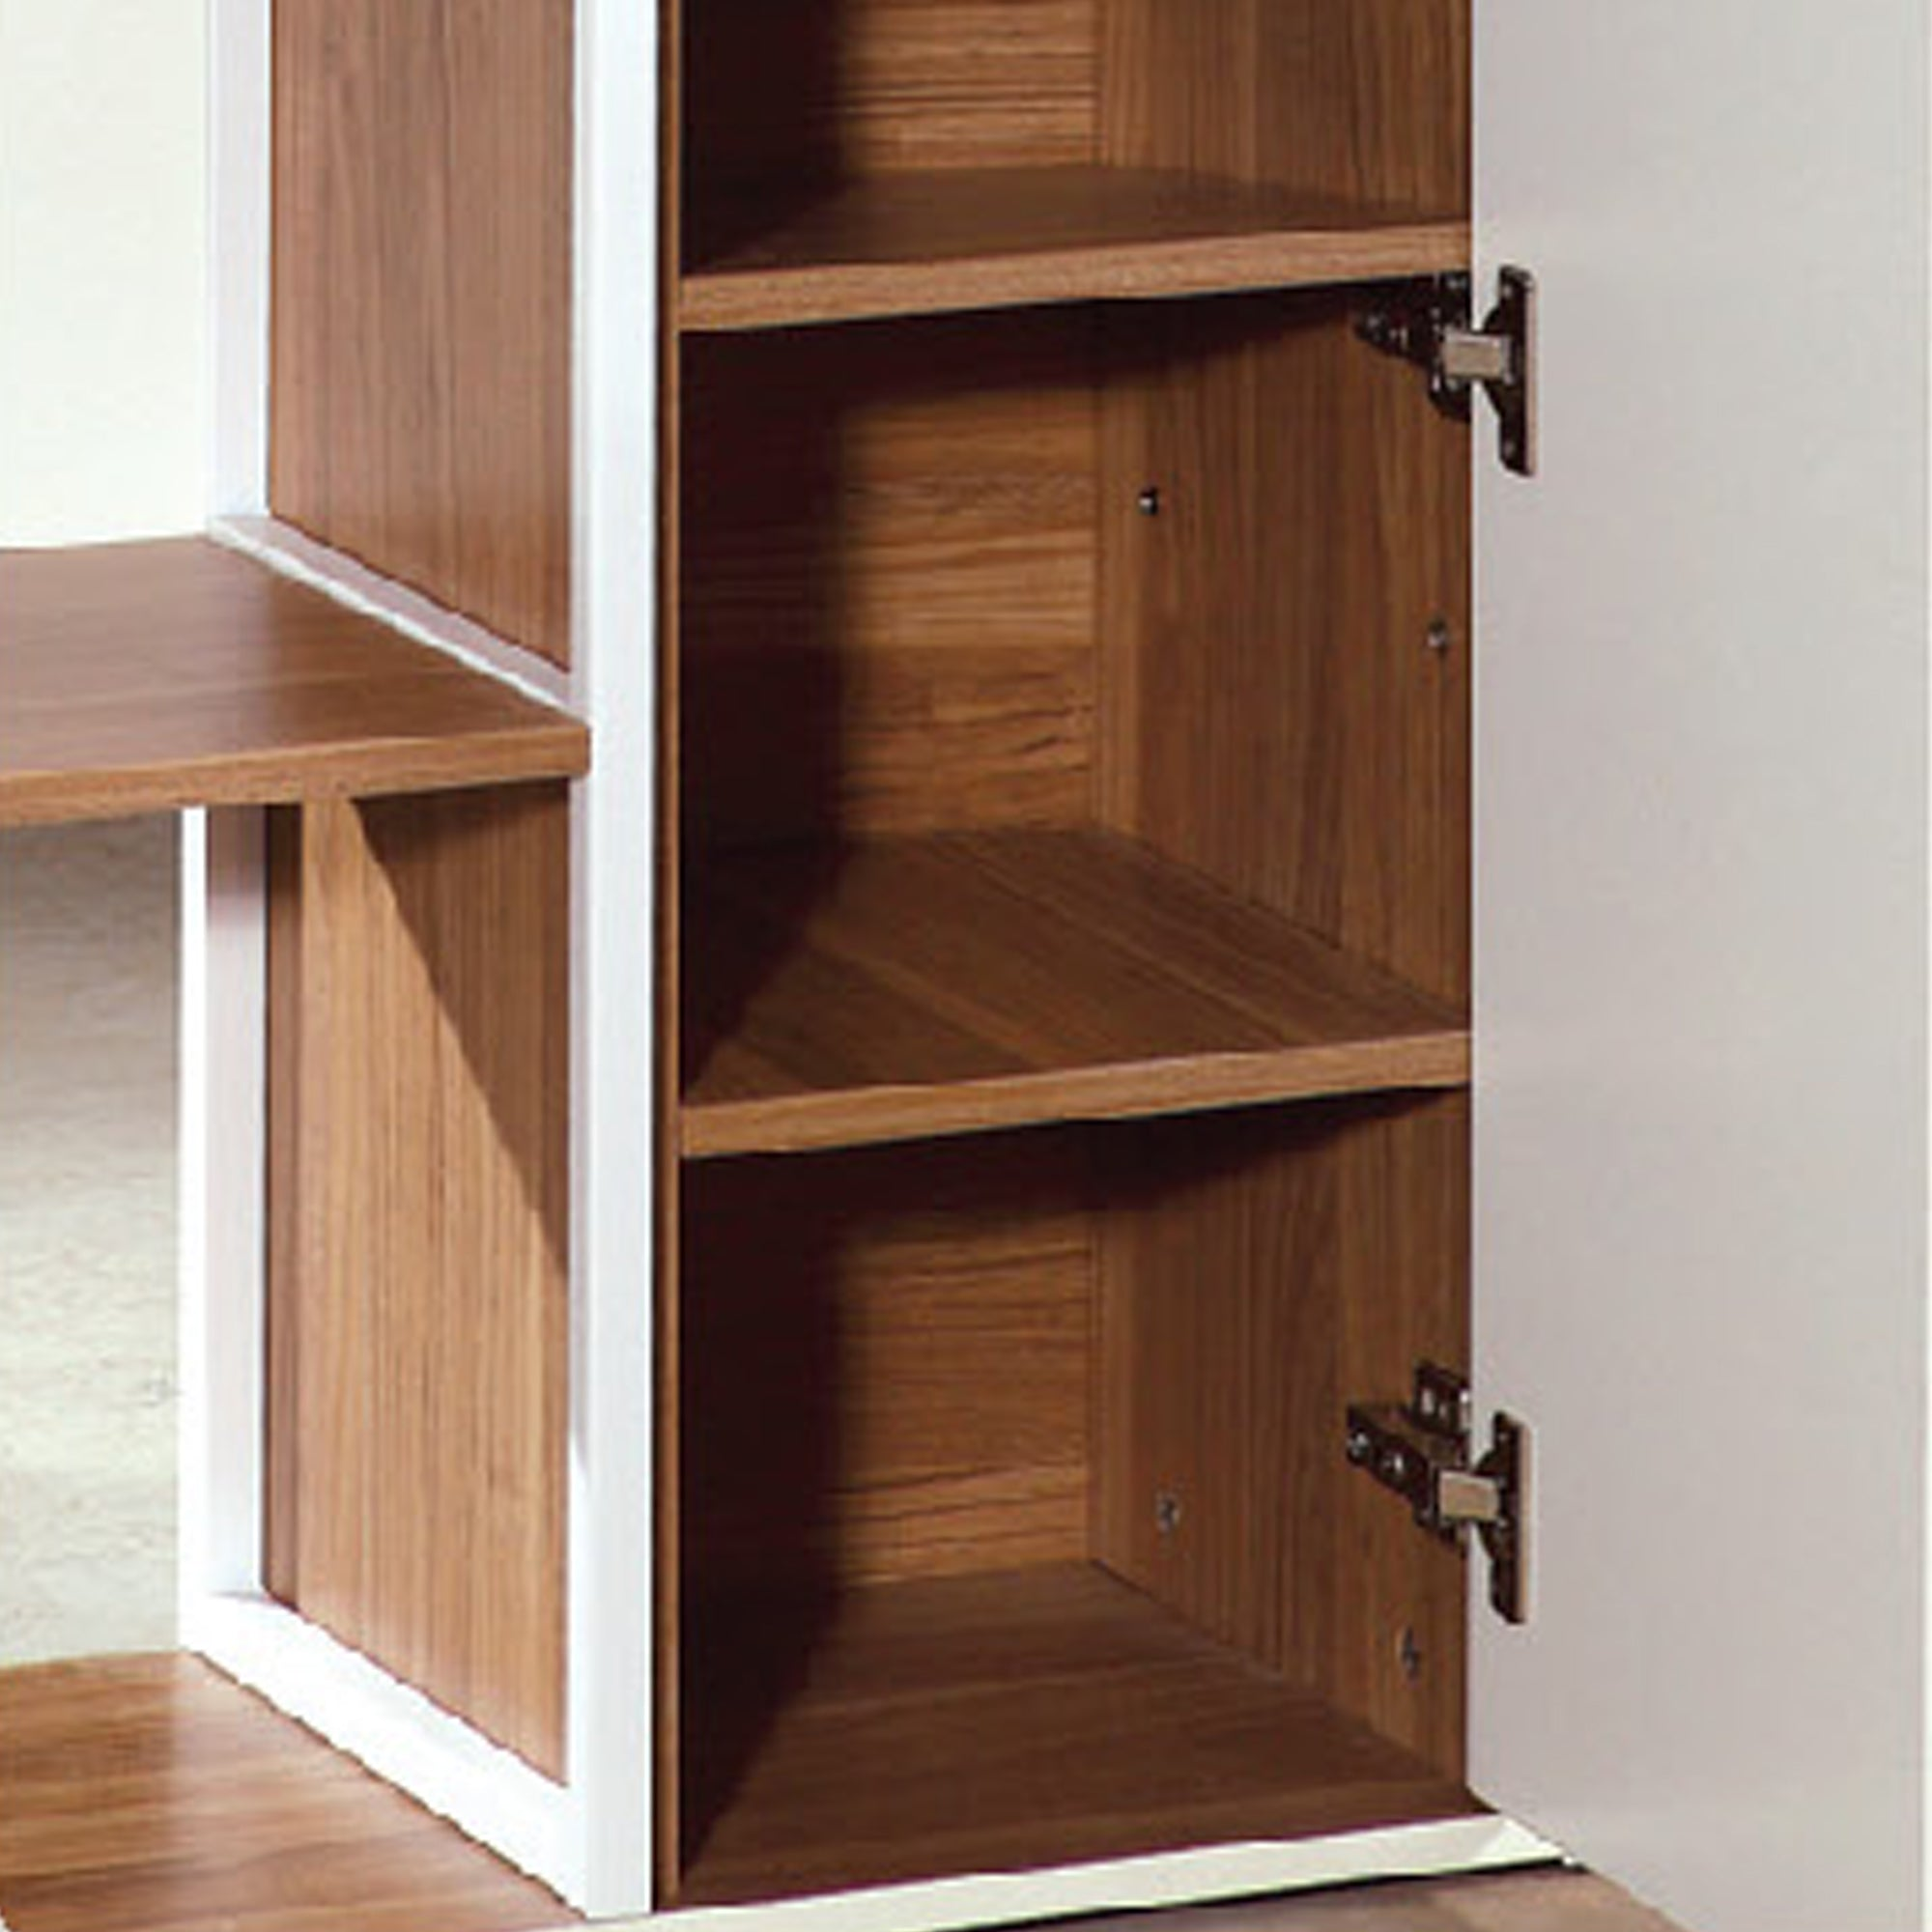 Amore Book Cabinet With Storage Shelves